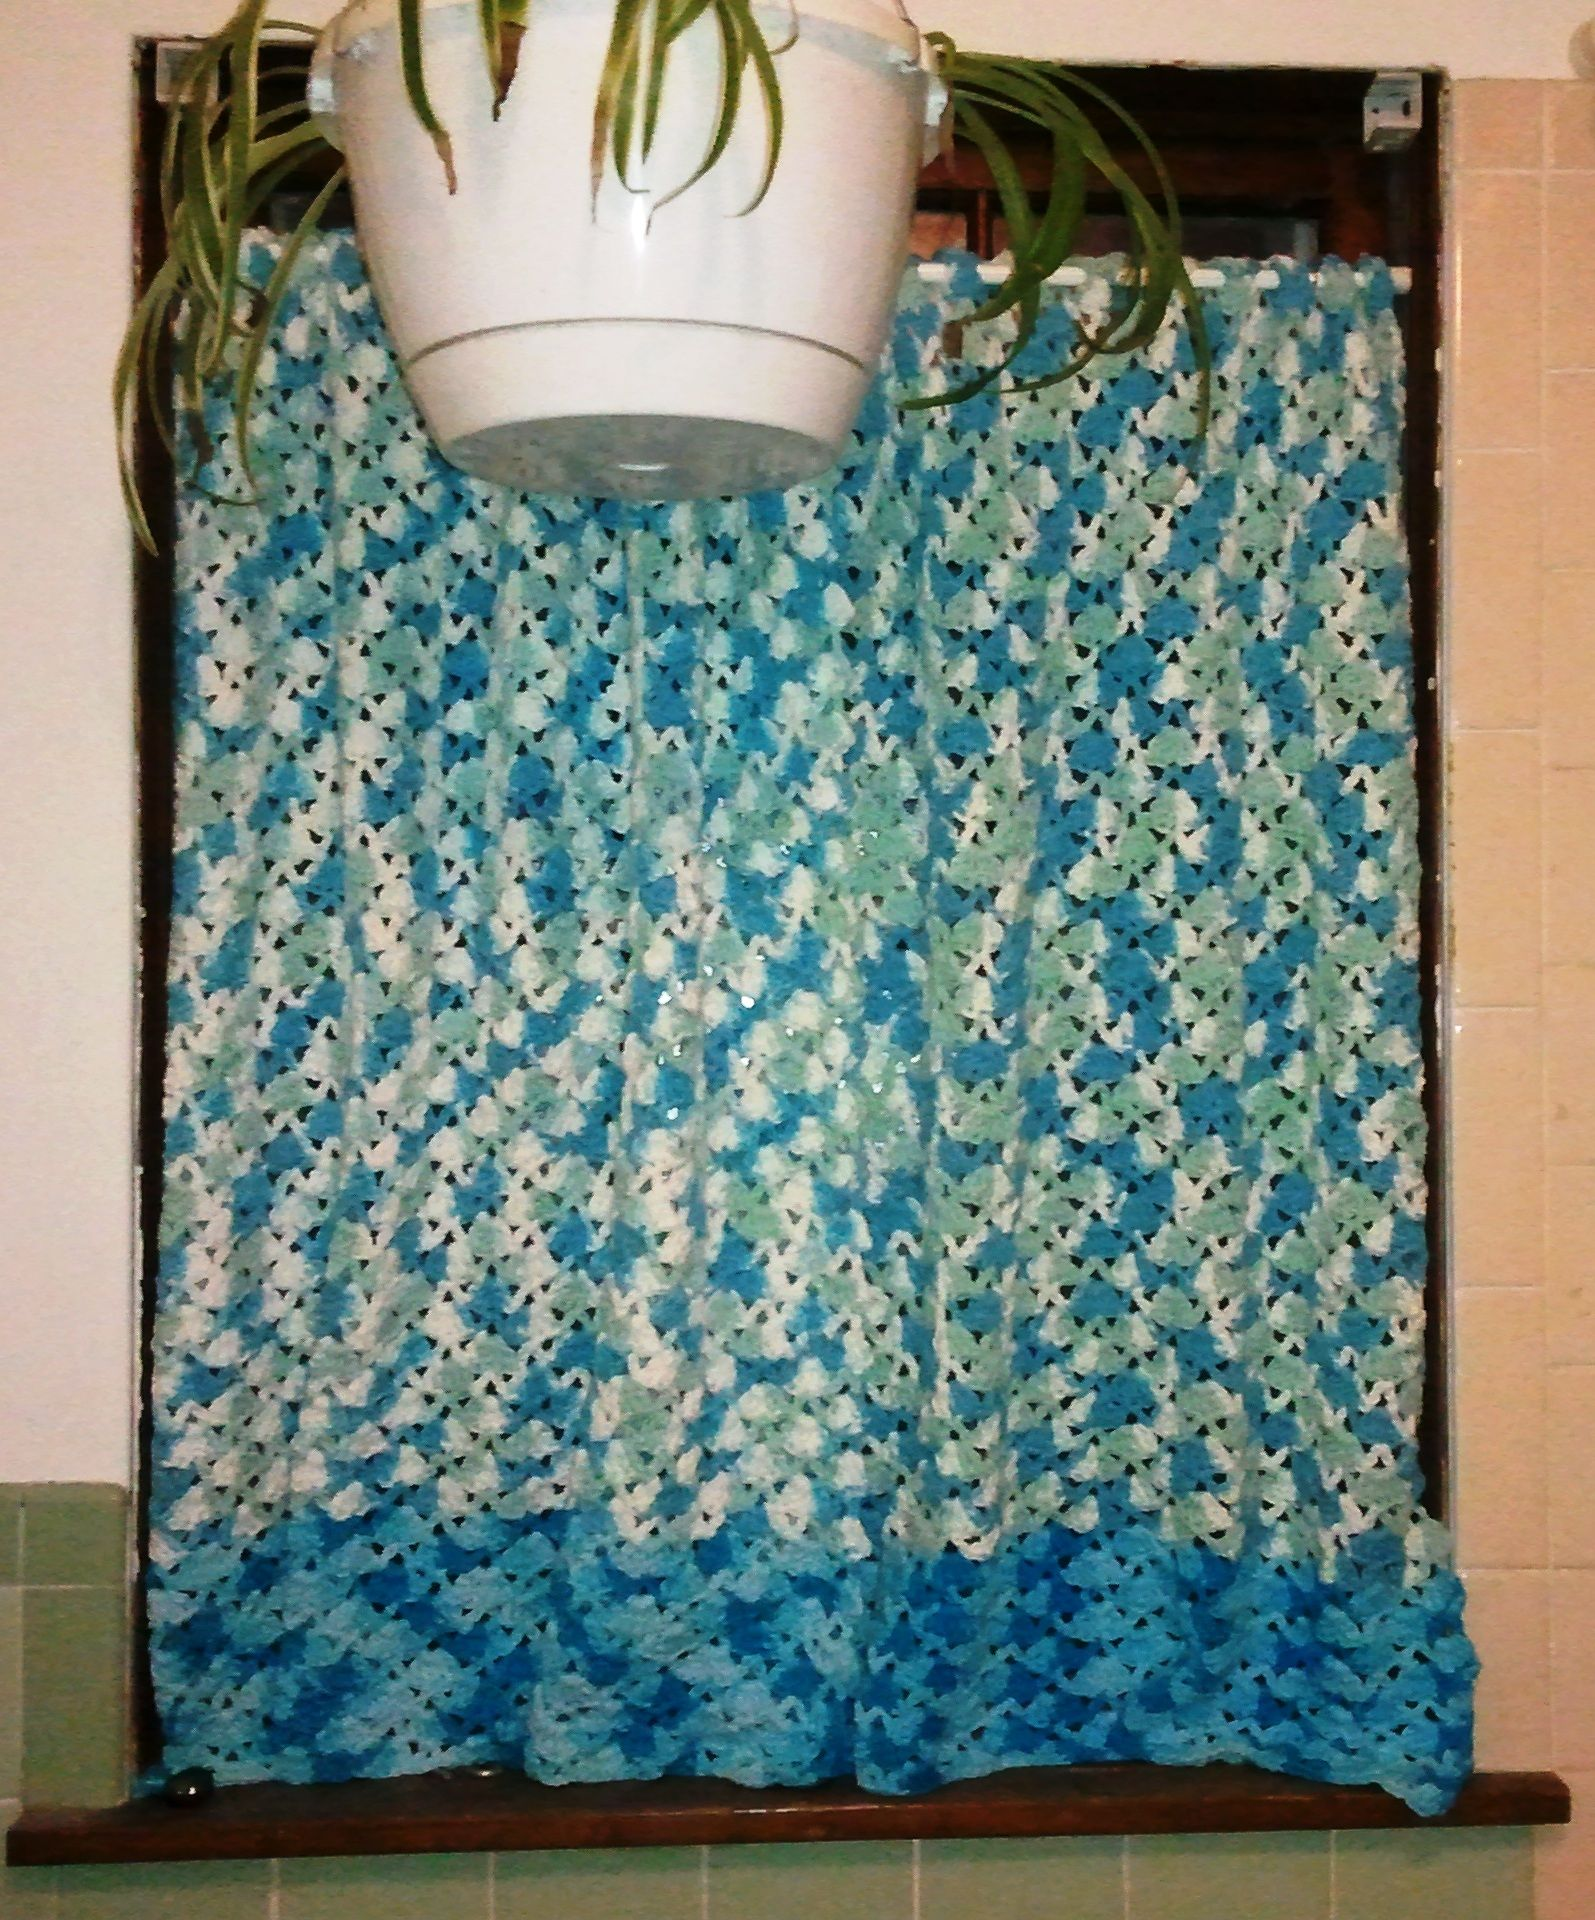 Crochet Kitchen Curtains: Crocheted Curtain Panels (2 Panels) In The Shell Stitch